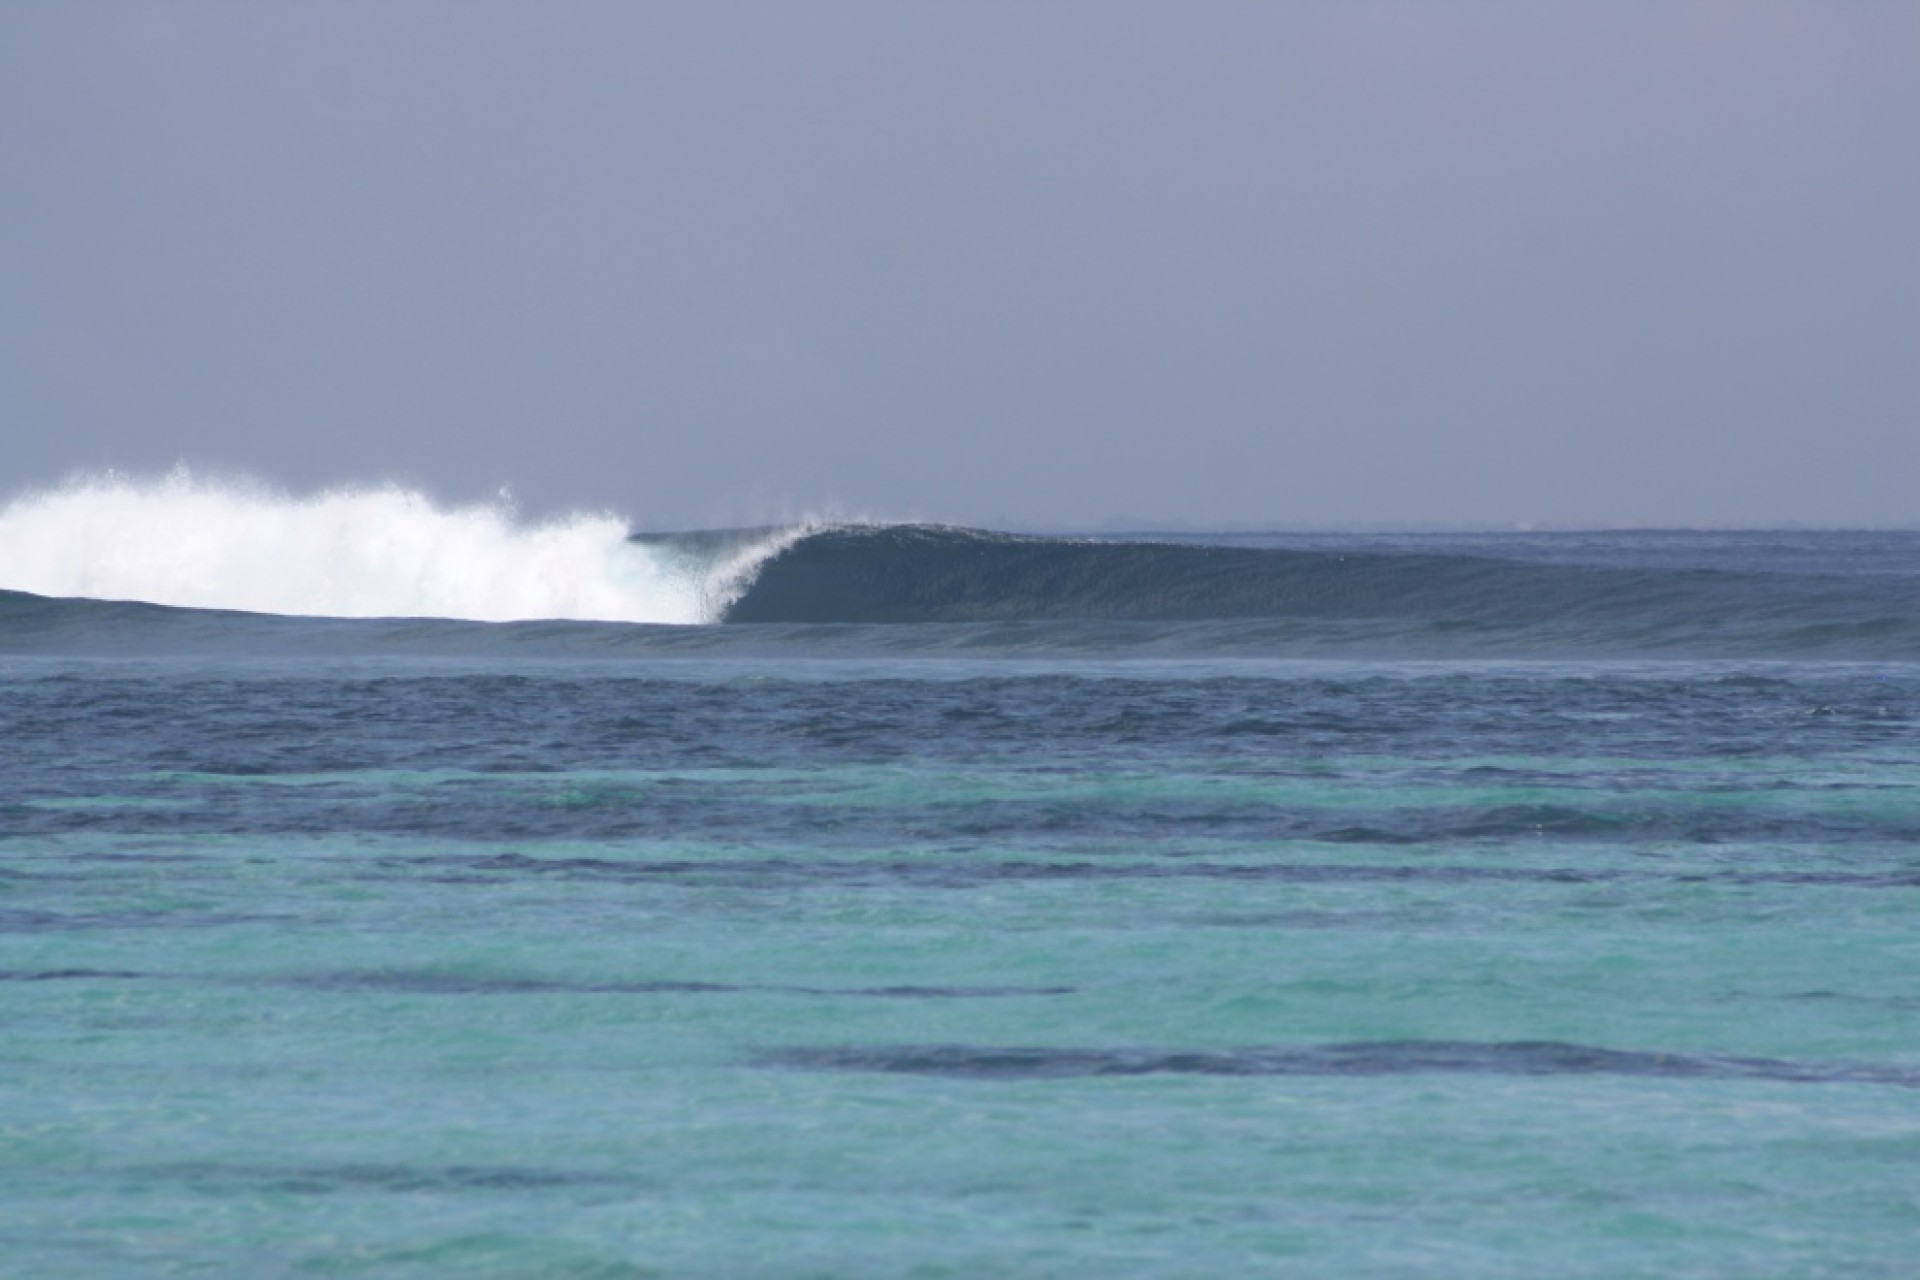 Coxa's photo of Shipwrecks - Lembongan